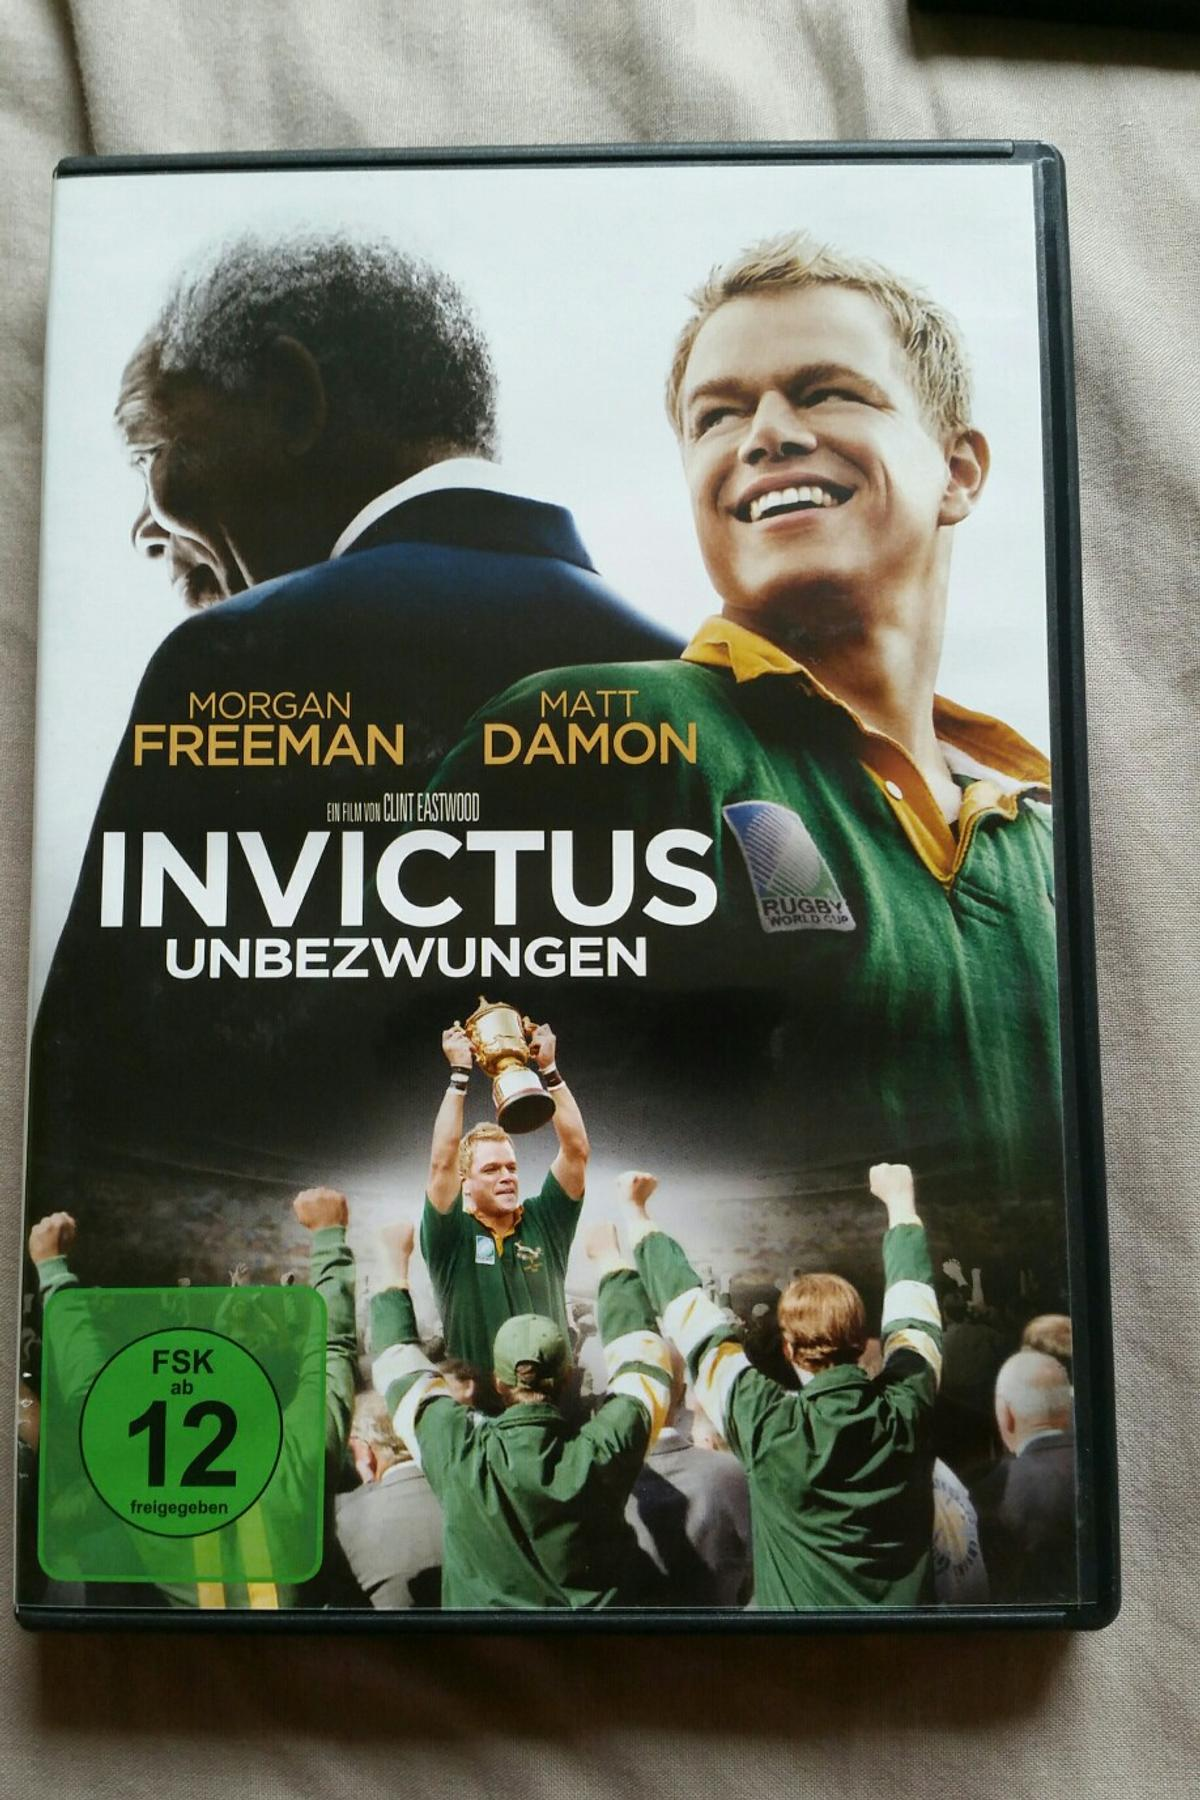 Dvd Invictus Unbezwungen In 64409 Messel For 300 For Sale Shpock